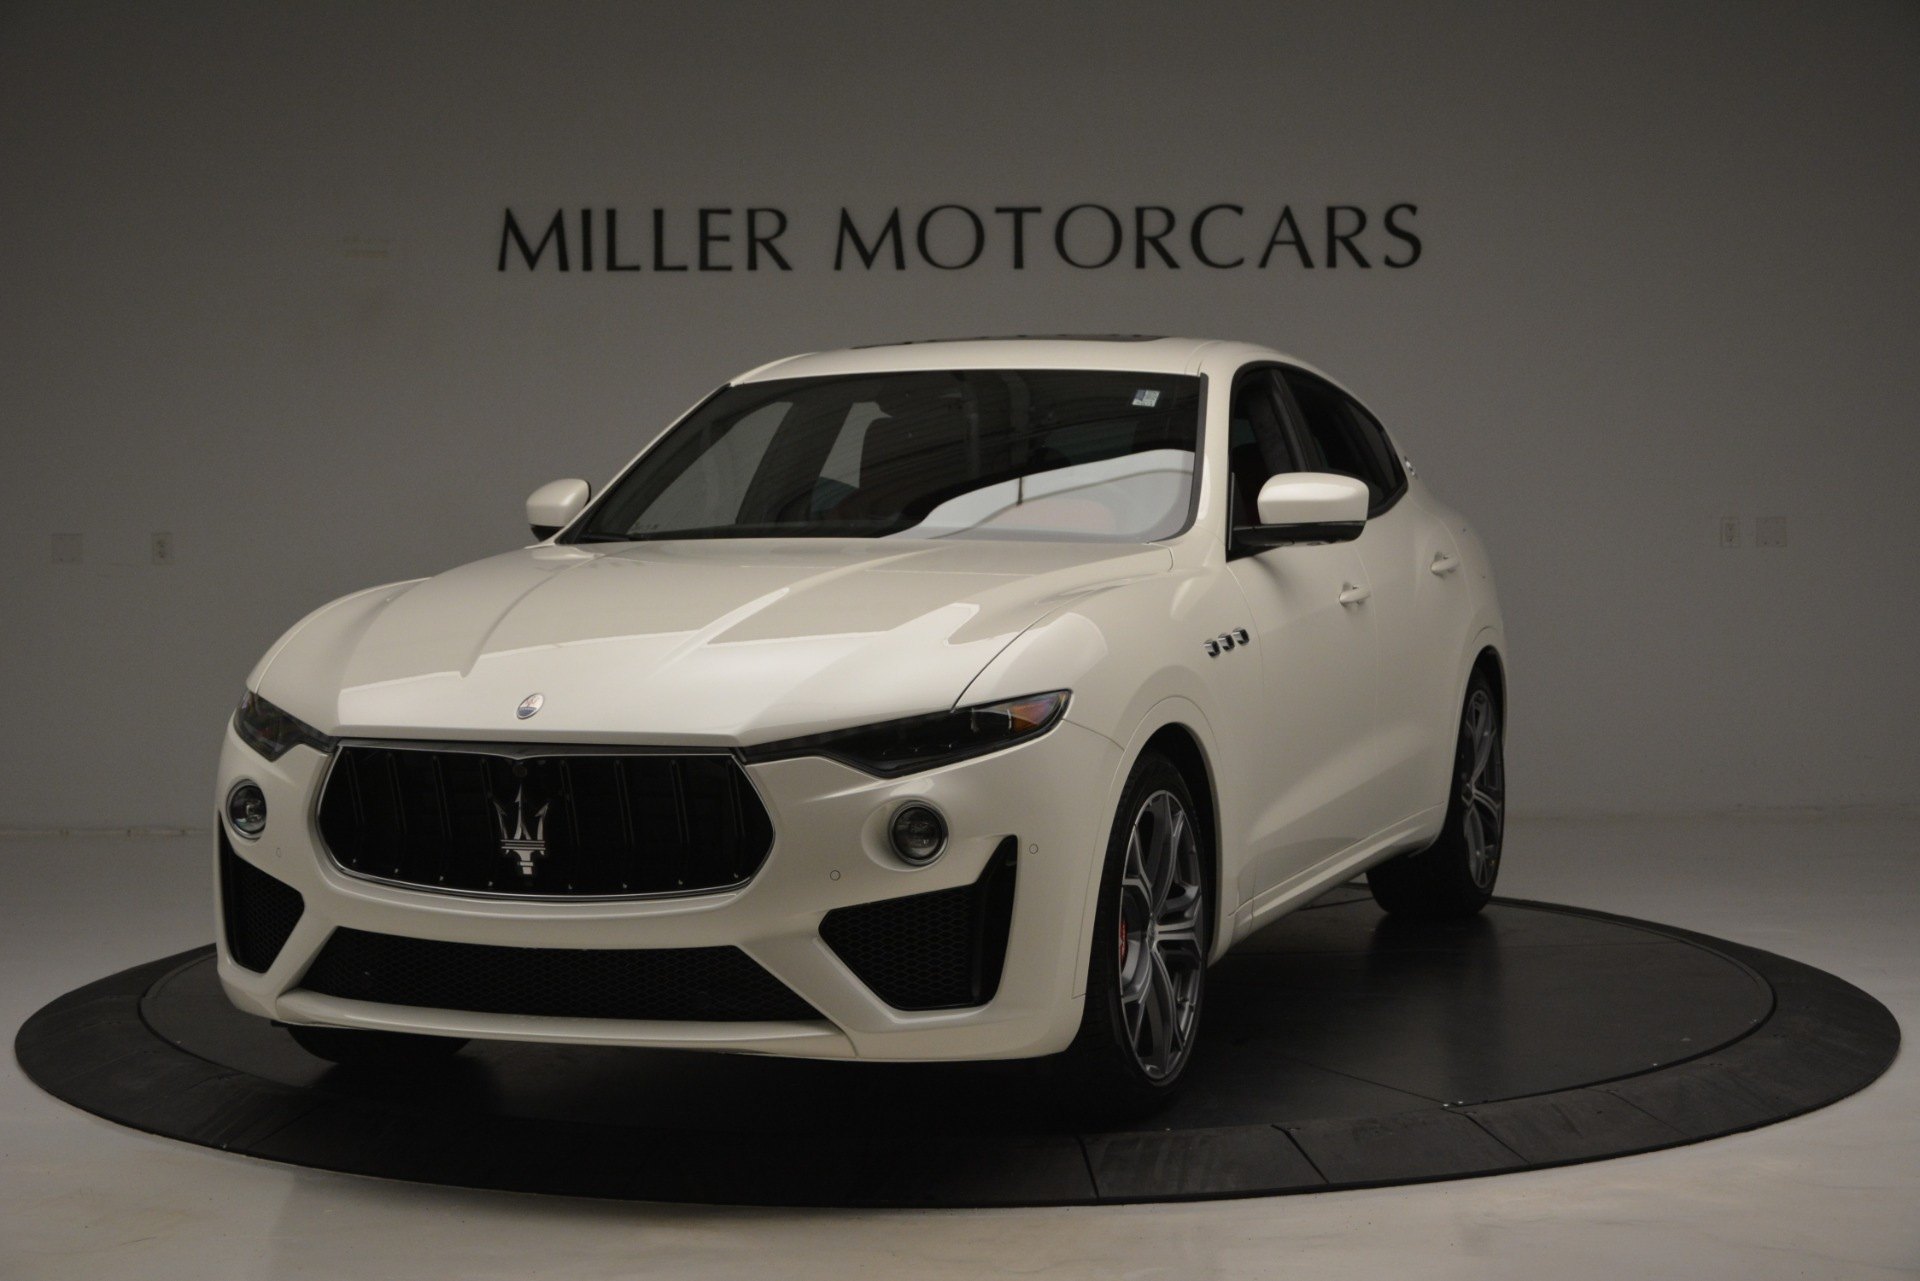 New 2019 Maserati Levante GTS for sale Sold at Aston Martin of Greenwich in Greenwich CT 06830 1